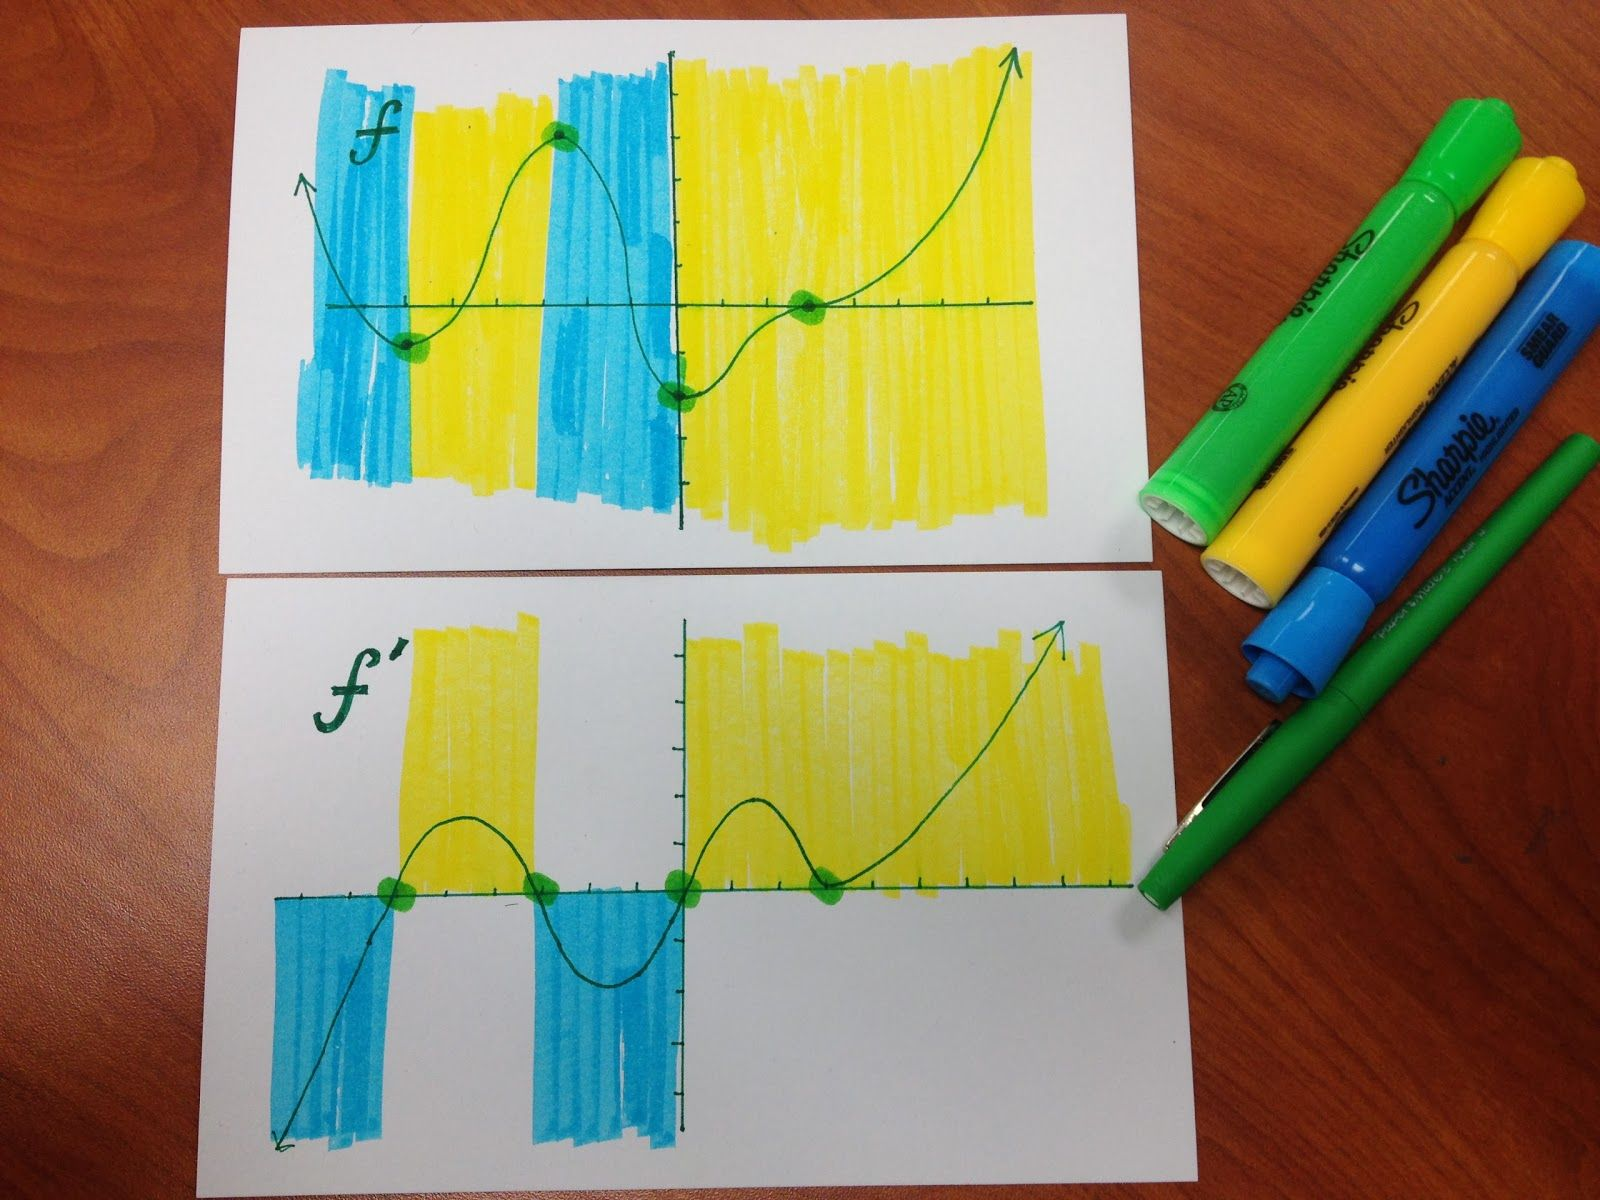 Square Root Of Negative One Teach Math Sketching F From